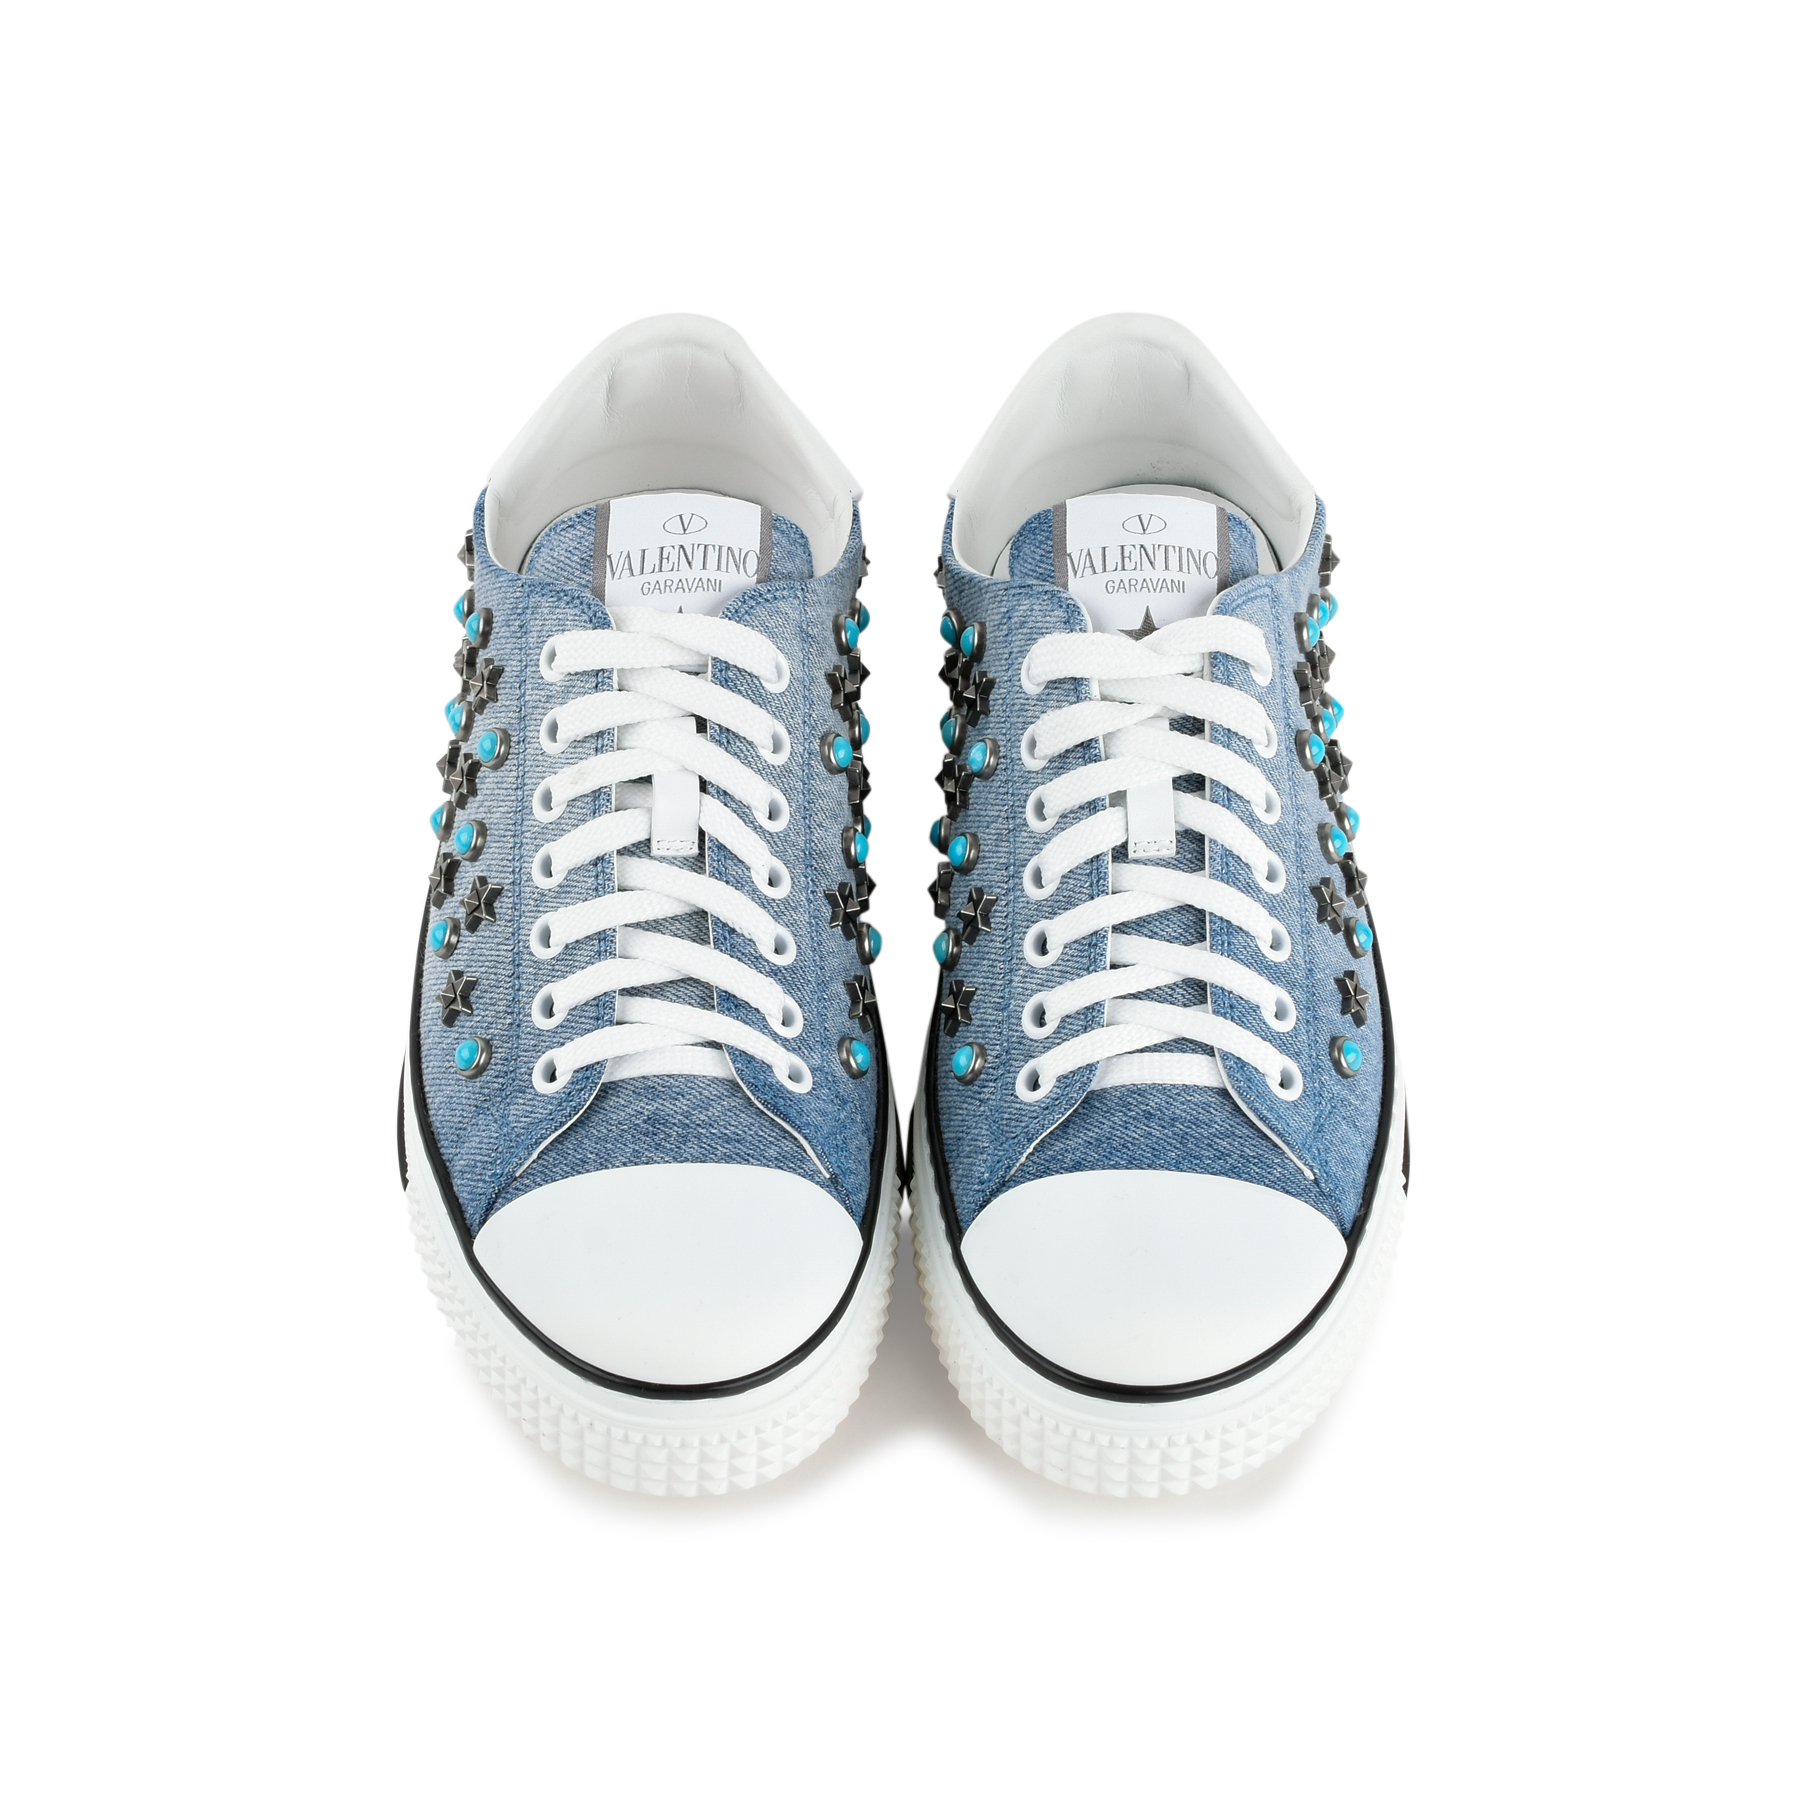 81afb3f0873 Authentic Second Hand Valentino Star Studded Denim Sneakers (PSS-200-01351)  - THE FIFTH COLLECTION